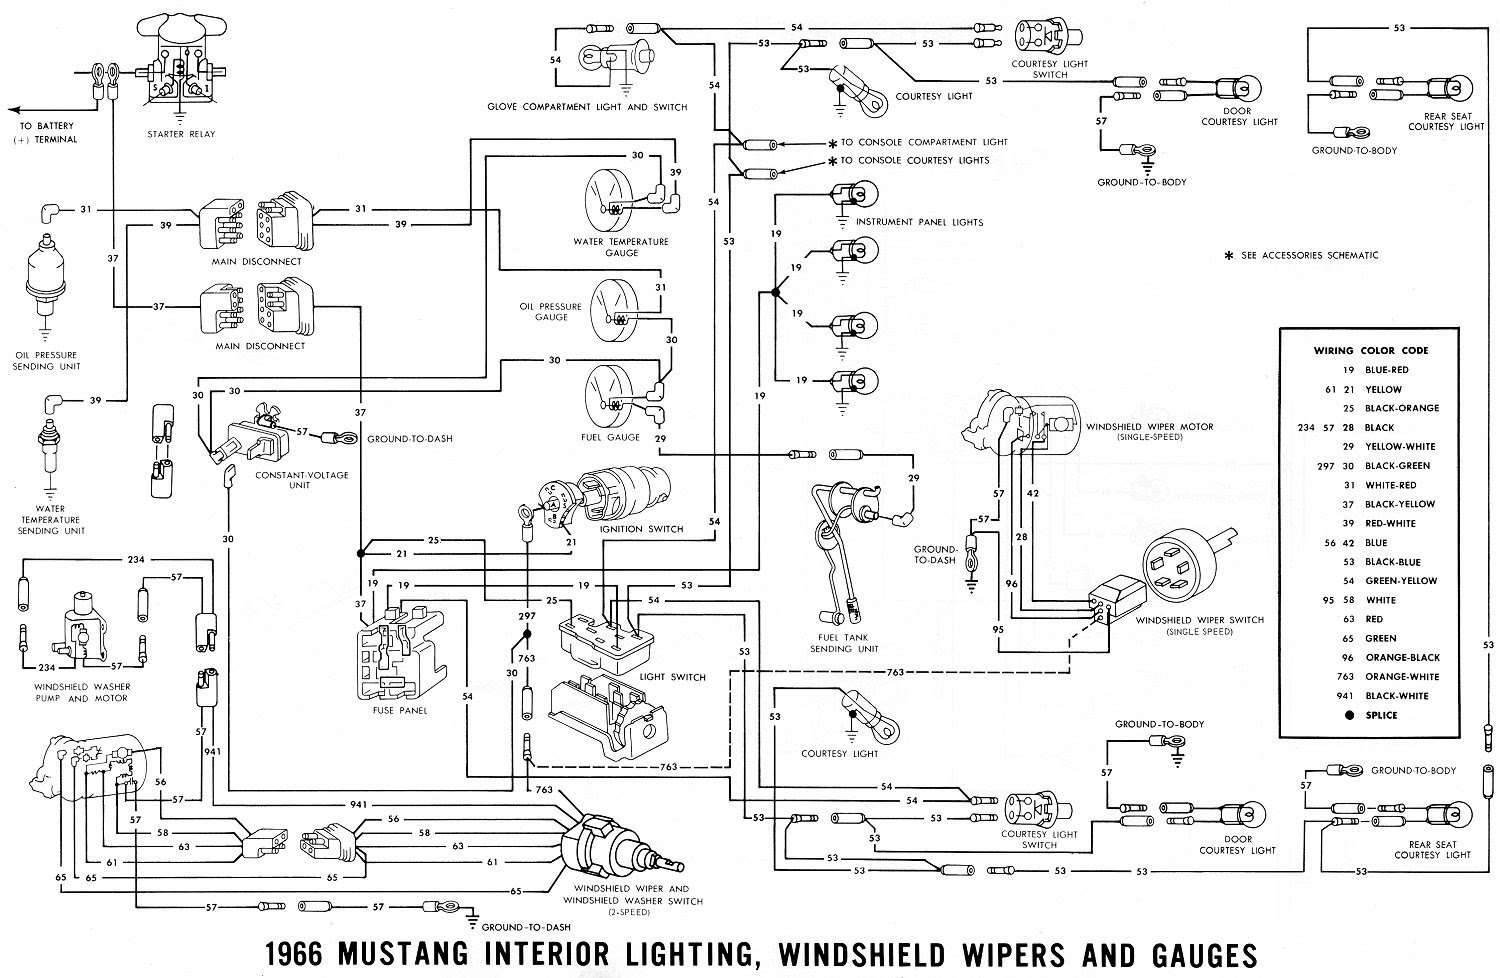 Diagram 1968 Mustang Fuel Gauge Wiring Diagram Full Version Hd Quality Wiring Diagram Diagrammd Rugby Moirans Fr